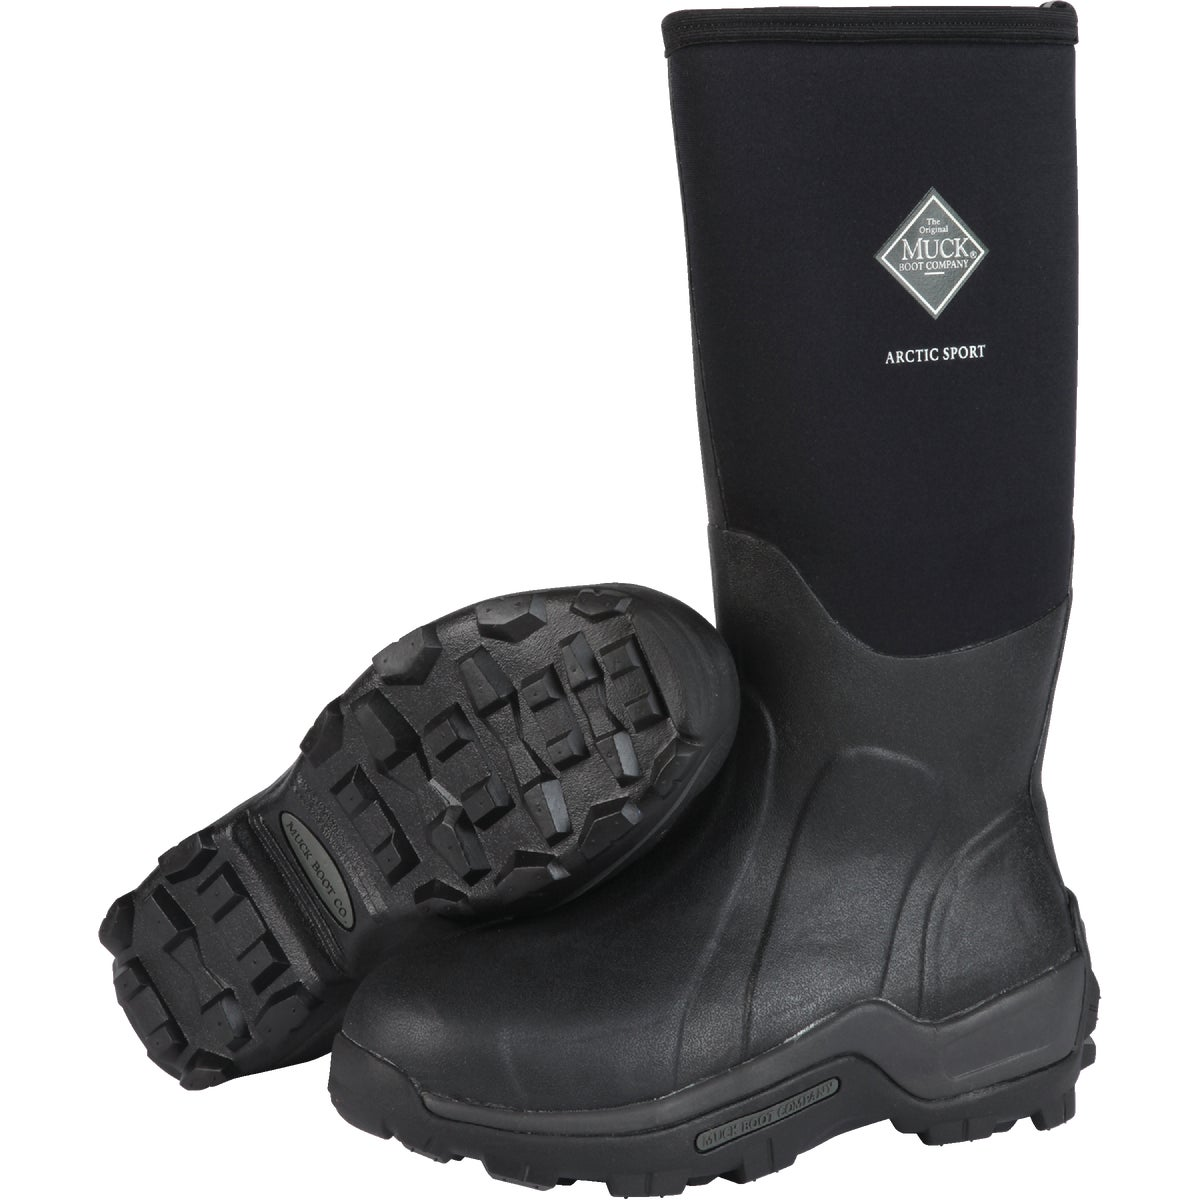 SZ 11 ARTIC SPRT HI BOOT - ASP000-11 by Muck Boot Team J